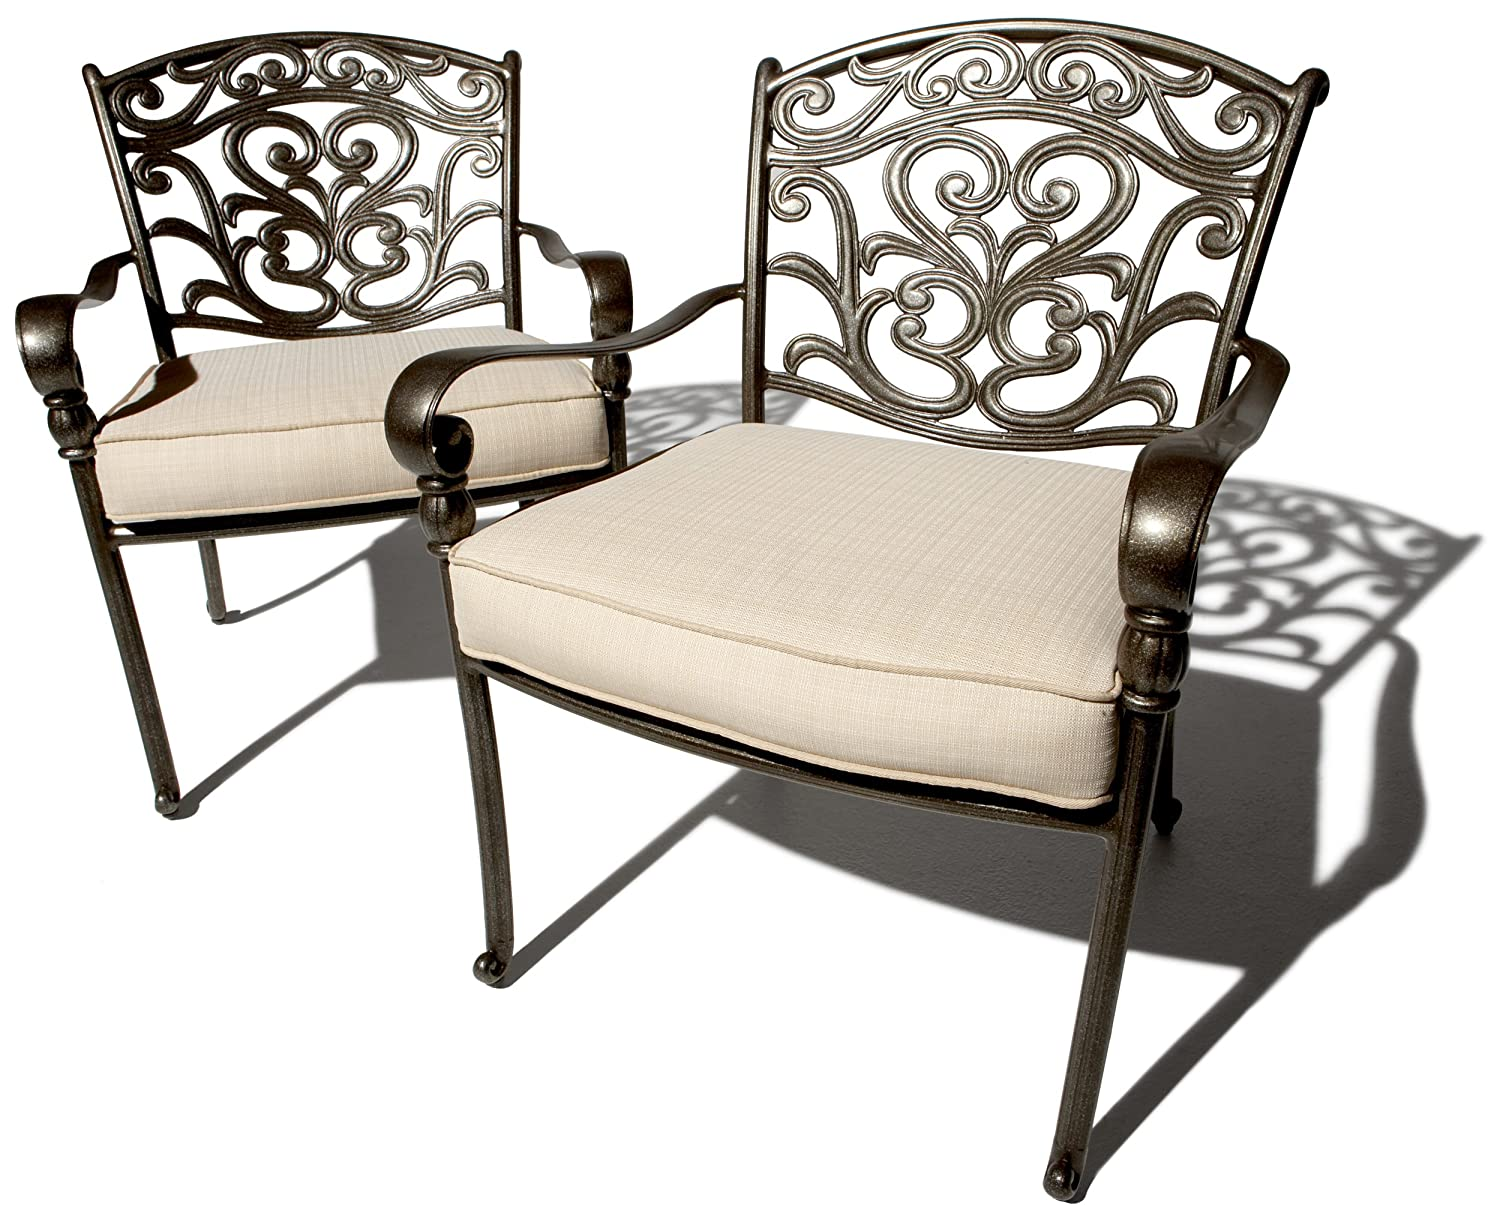 Other Cast Aluminum Furniture For Outdoor Use